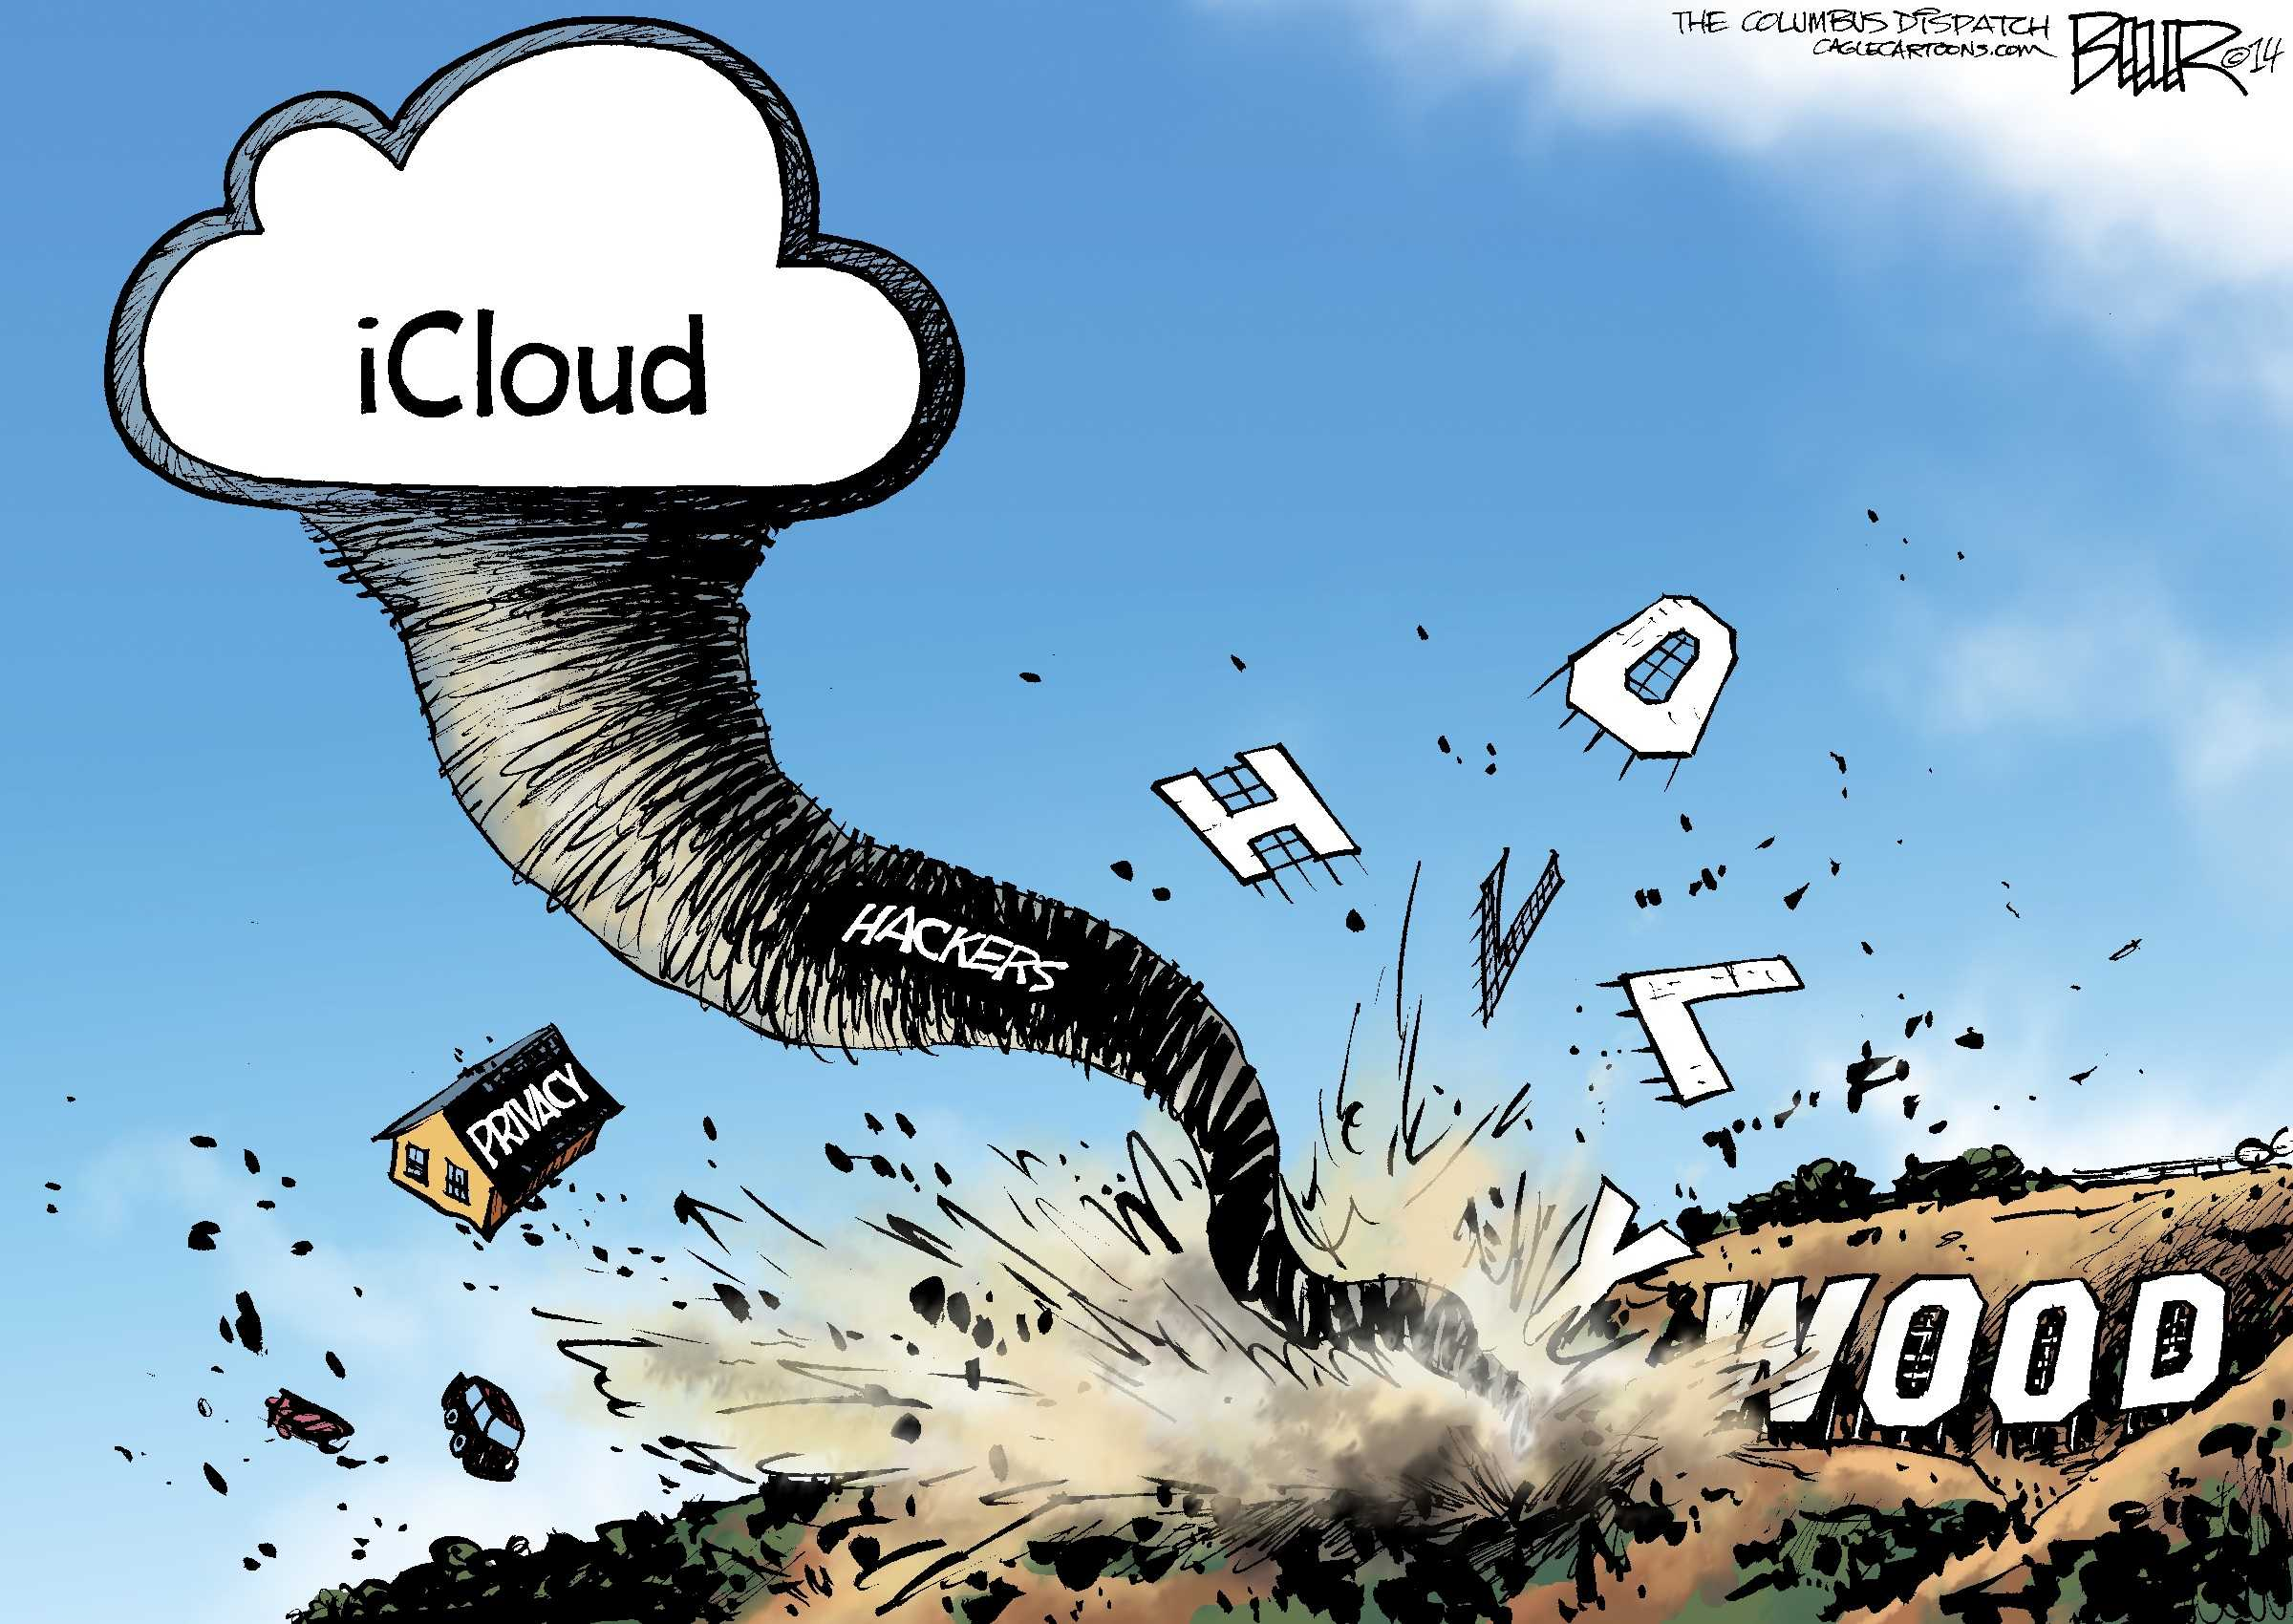 The cartoon illustrates a summary of what's happened with the iCloud breach (Nate Beeler/MCT).